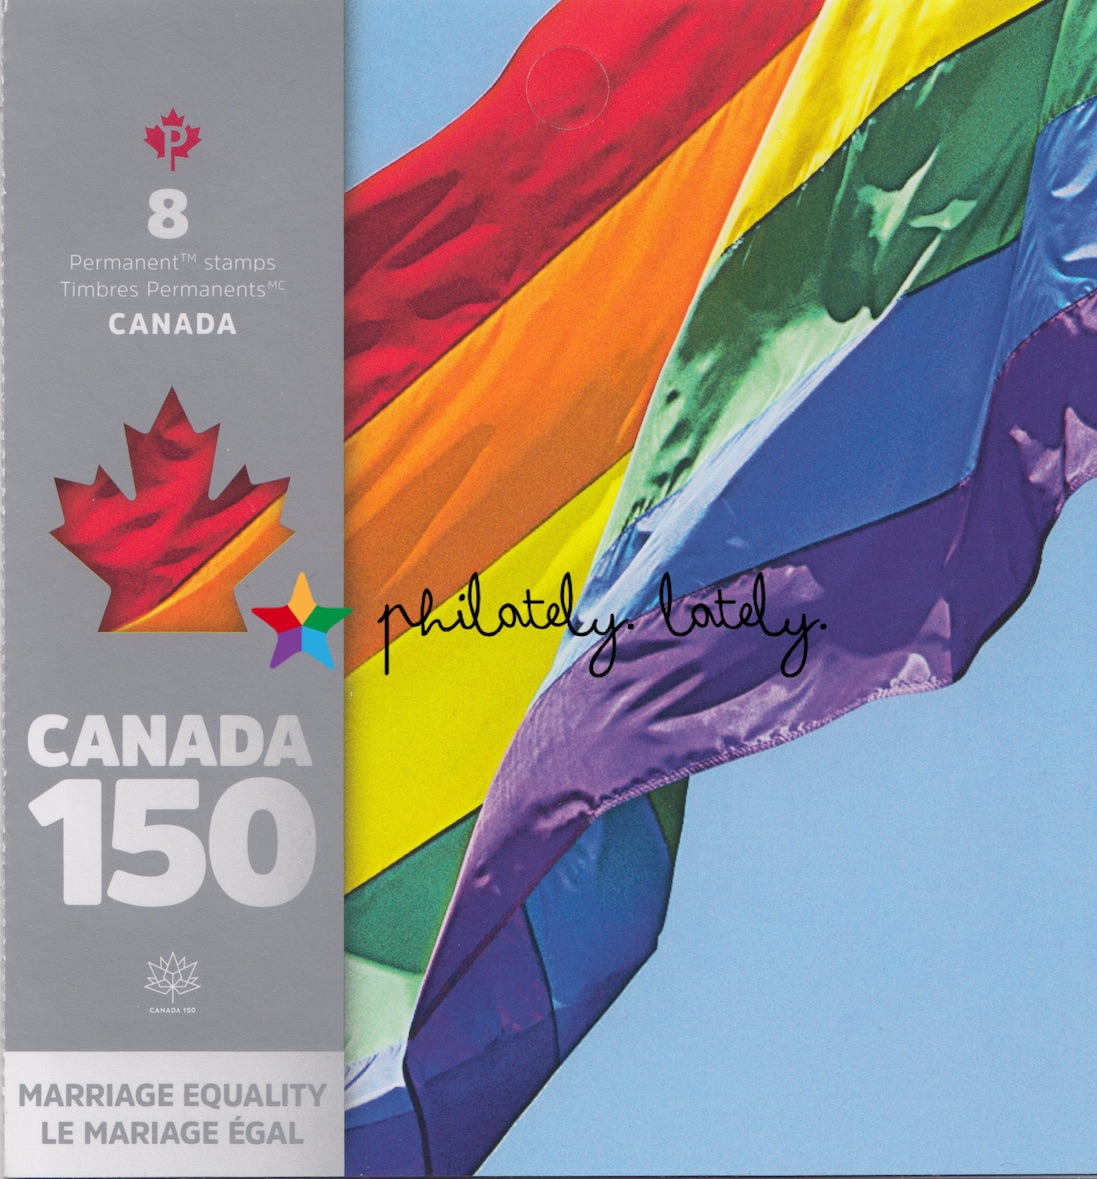 014_Canada_LGBT_Stamps.jpg